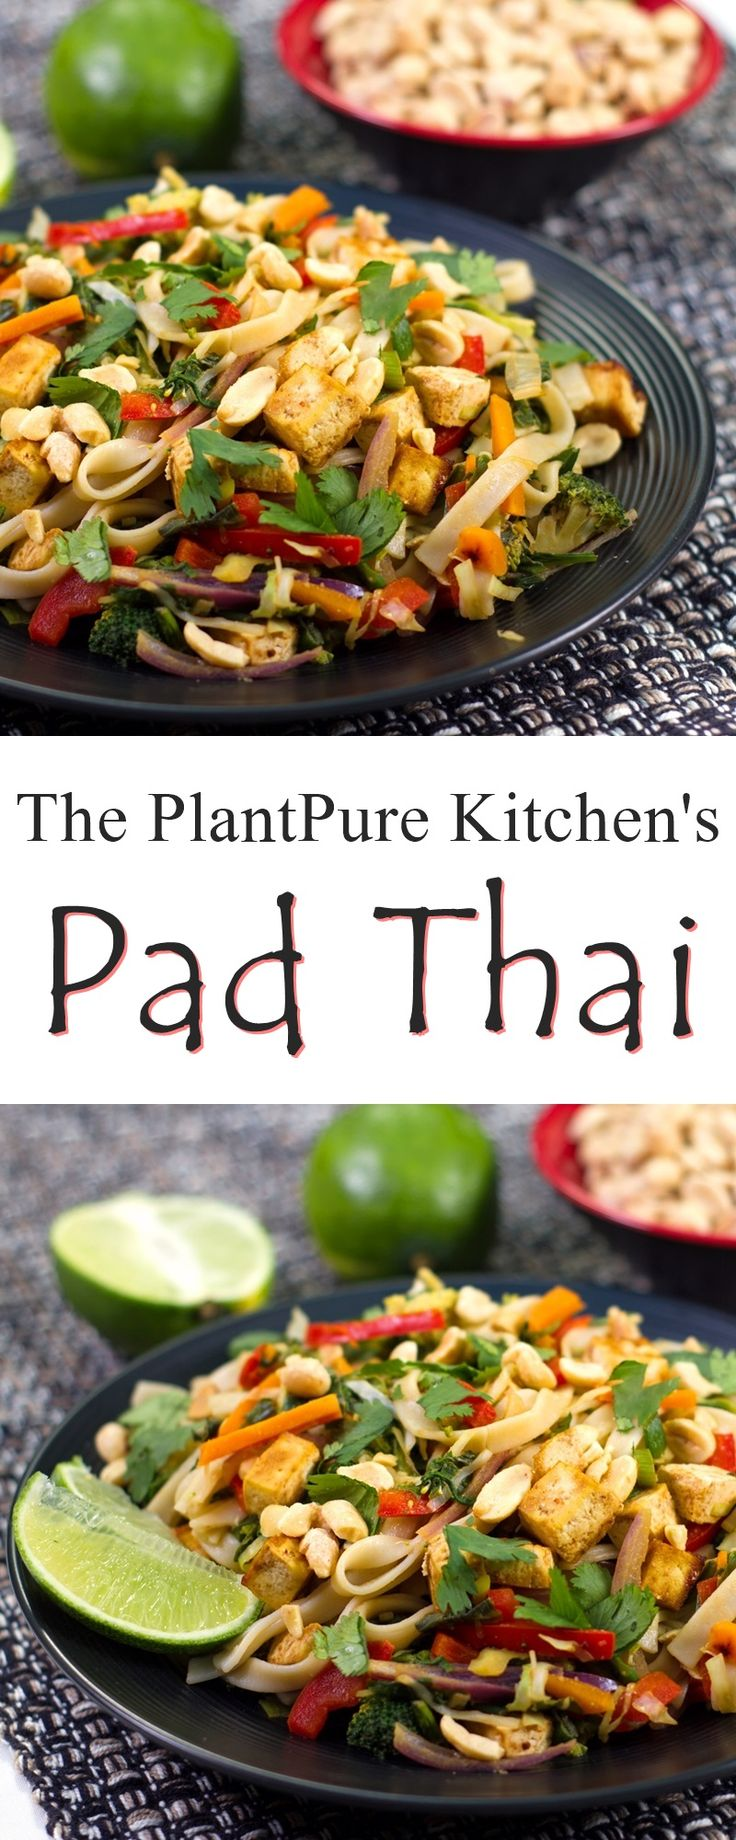 Vegan Pad Thai Recipe from The PlantPure Kitchen (plant-based, dairy-free, gluten-free, oil-free, optionally nut-free and healthy!)